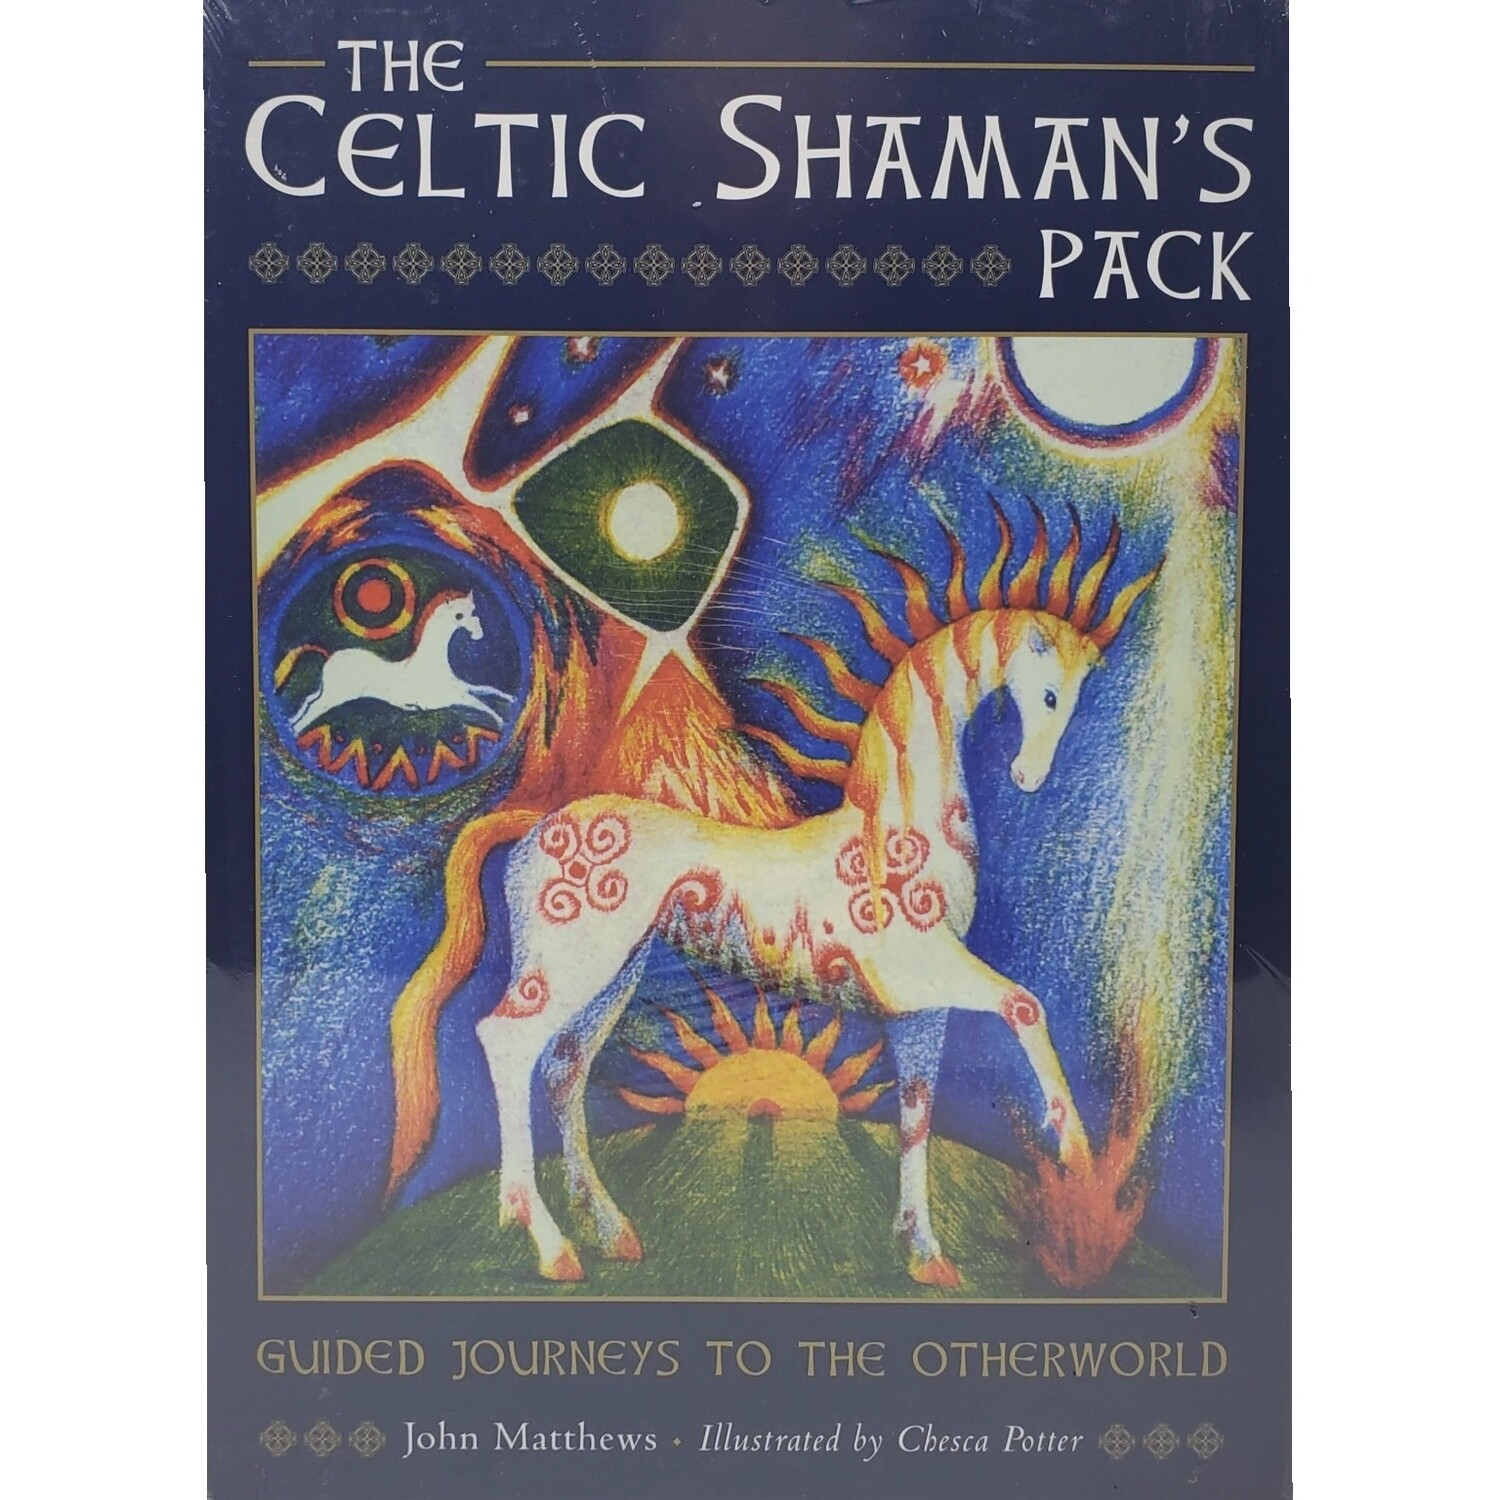 CELTIC SHAMAN'S PACK DECK AND BOOK